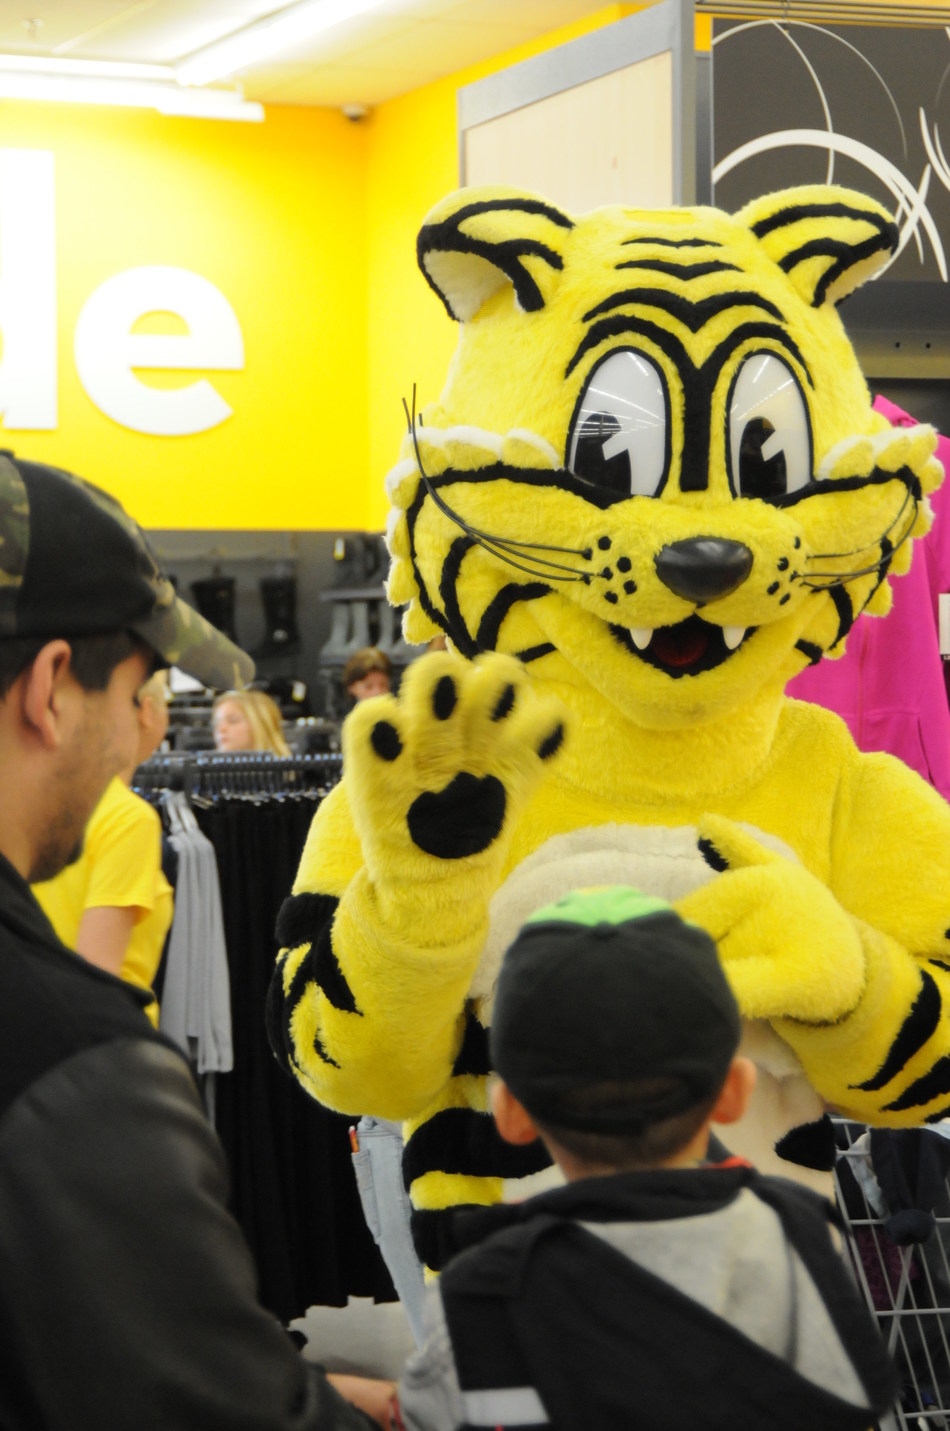 Notre mascotte Friendly, le Tigre Geant (Groupe CNW/Giant Tiger Stores Limited)